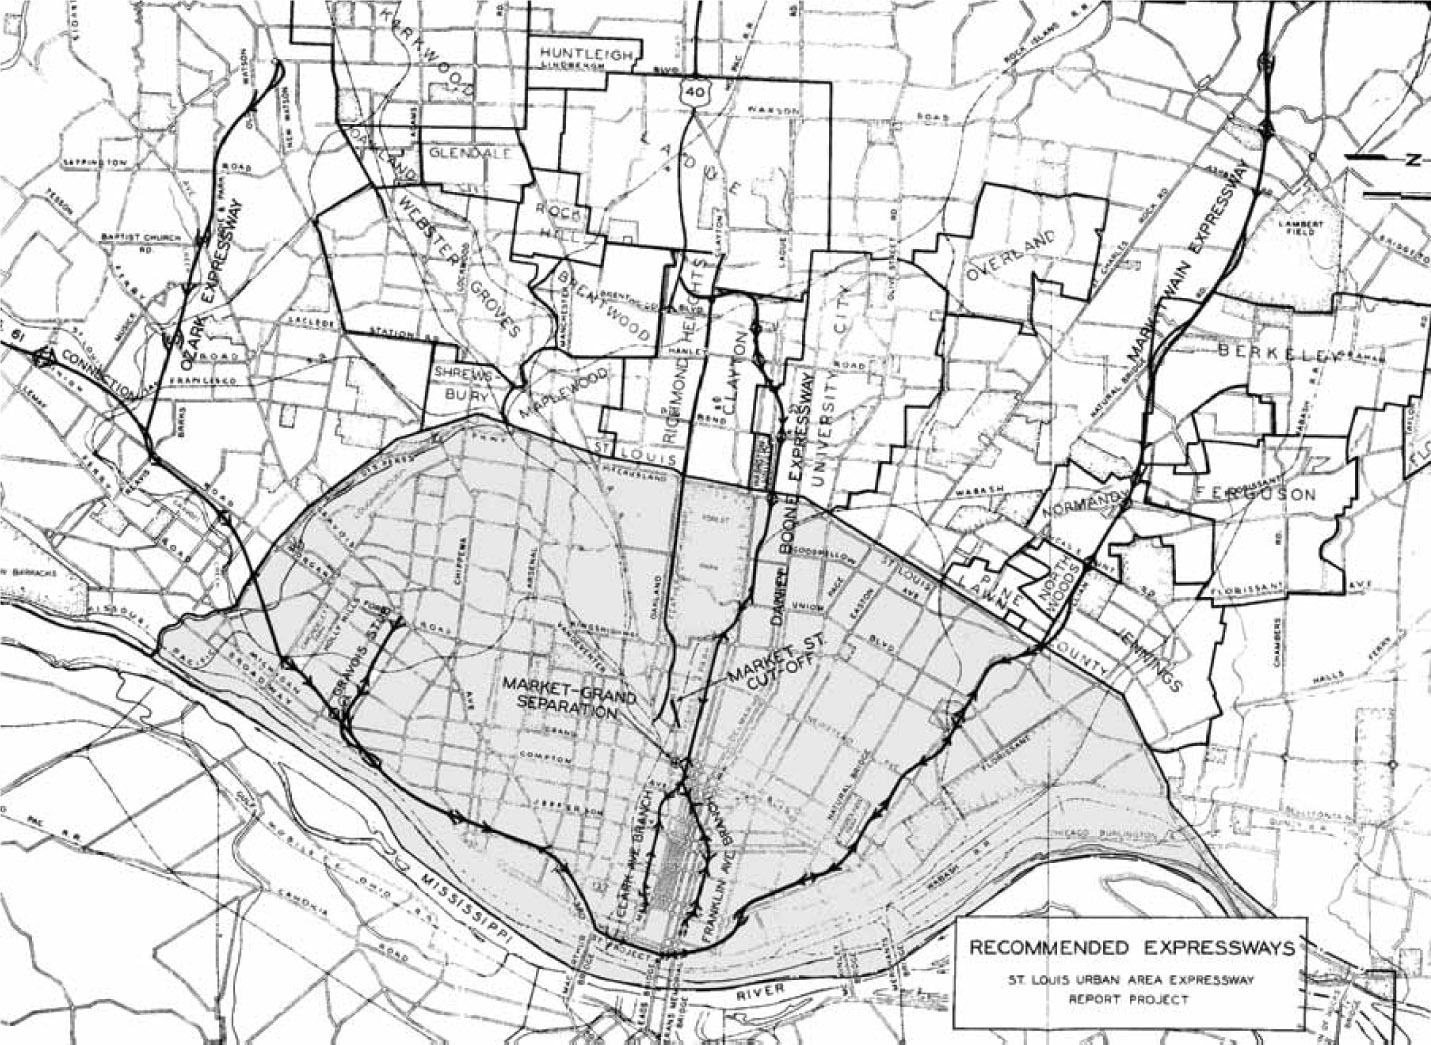 "800x600              800x600       Elliott Plan; Courtesy of Burbridge, J.  ""The Veering Path of Progress: Politics, Race, and Consensus in the North St. Louis Mark Twain Expressway Fight, 1950-1956.""  Masters Thesis, Saint Louis University, 2009."